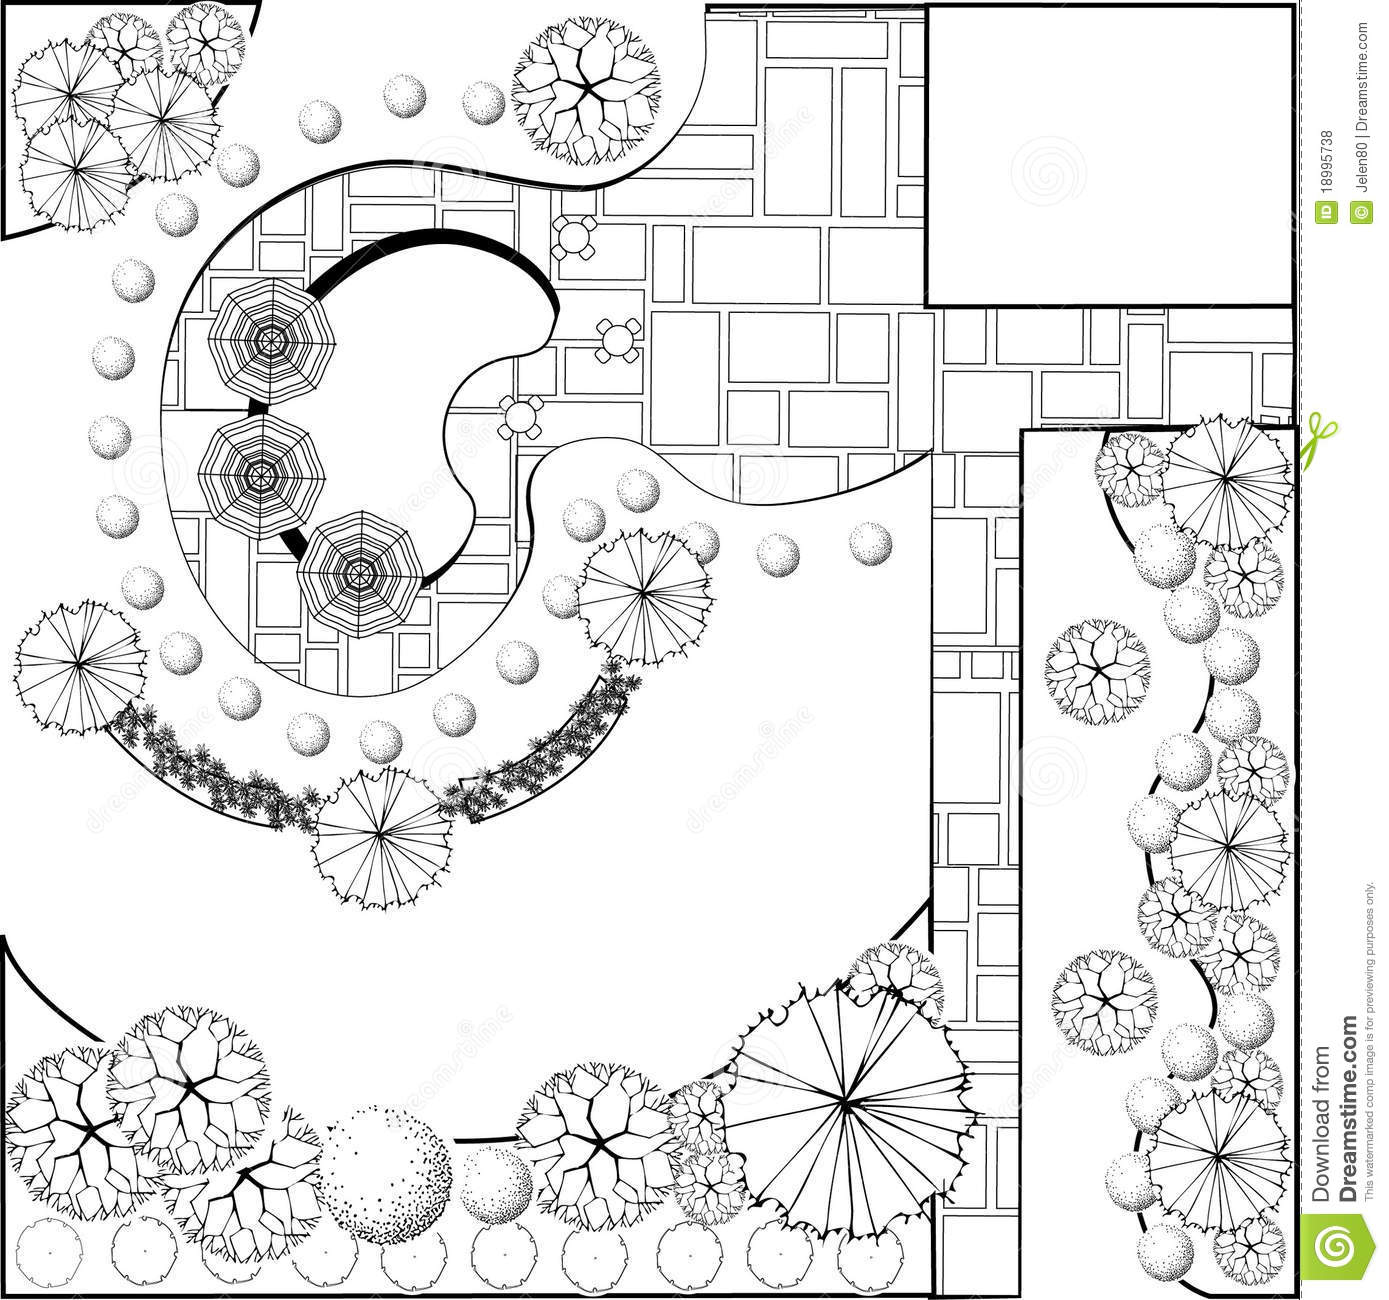 Garden Plan Black And White Stock Vector